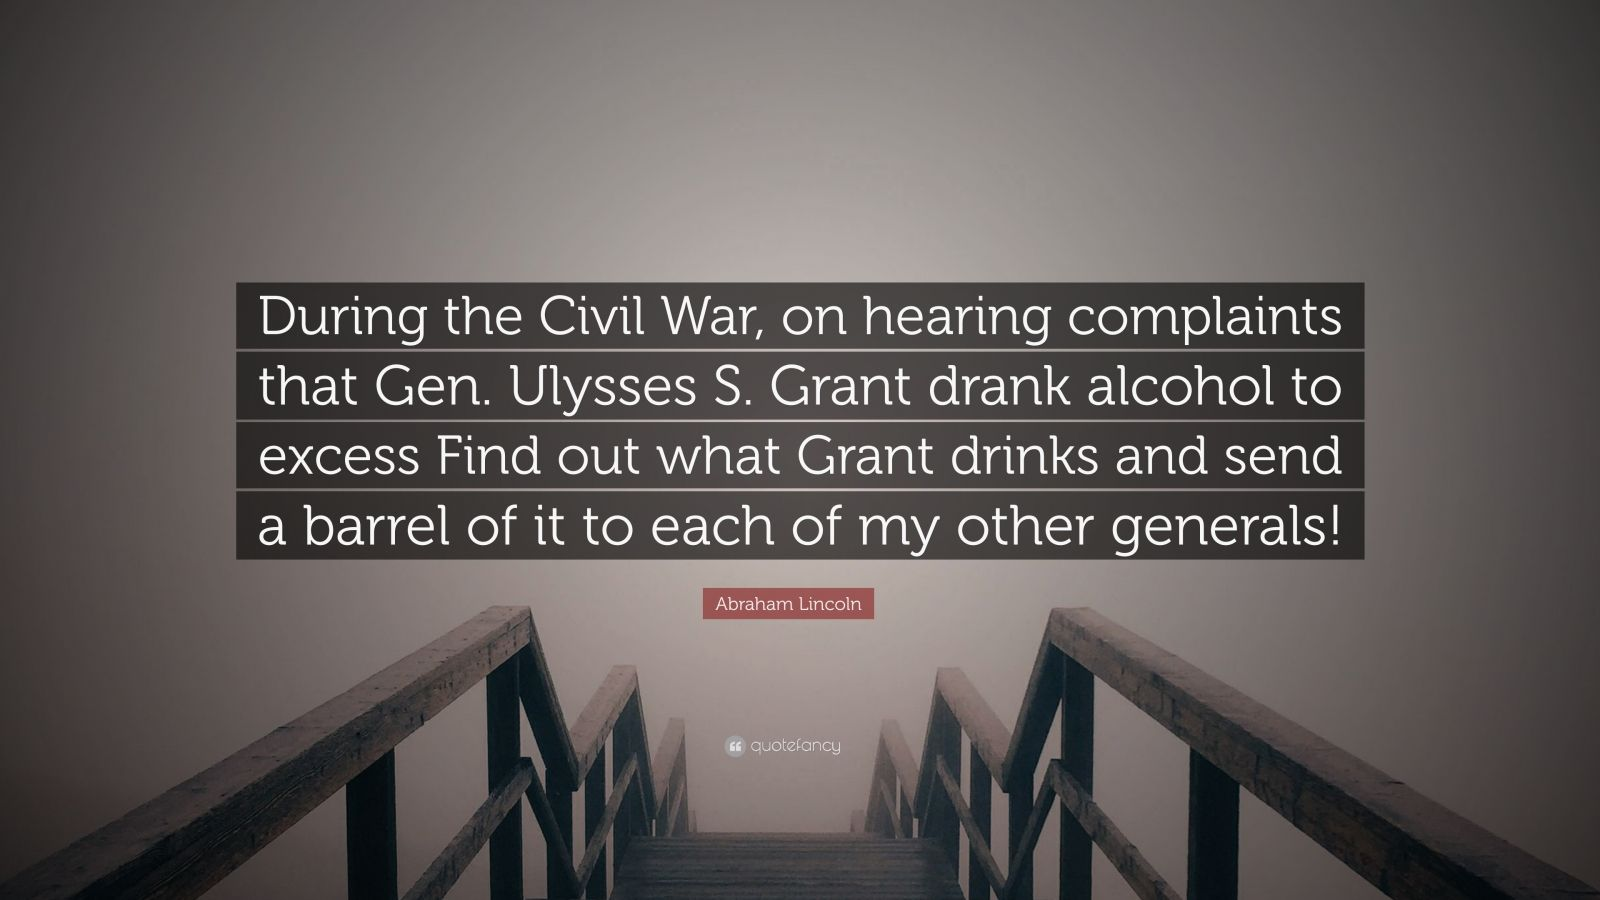 """Abraham Lincoln Quote: """"During the Civil War, on hearing complaints that Gen. Ulysses S. Grant drank alcohol to excess Find out what Grant drinks and send a barrel of it to each of my other generals!"""""""